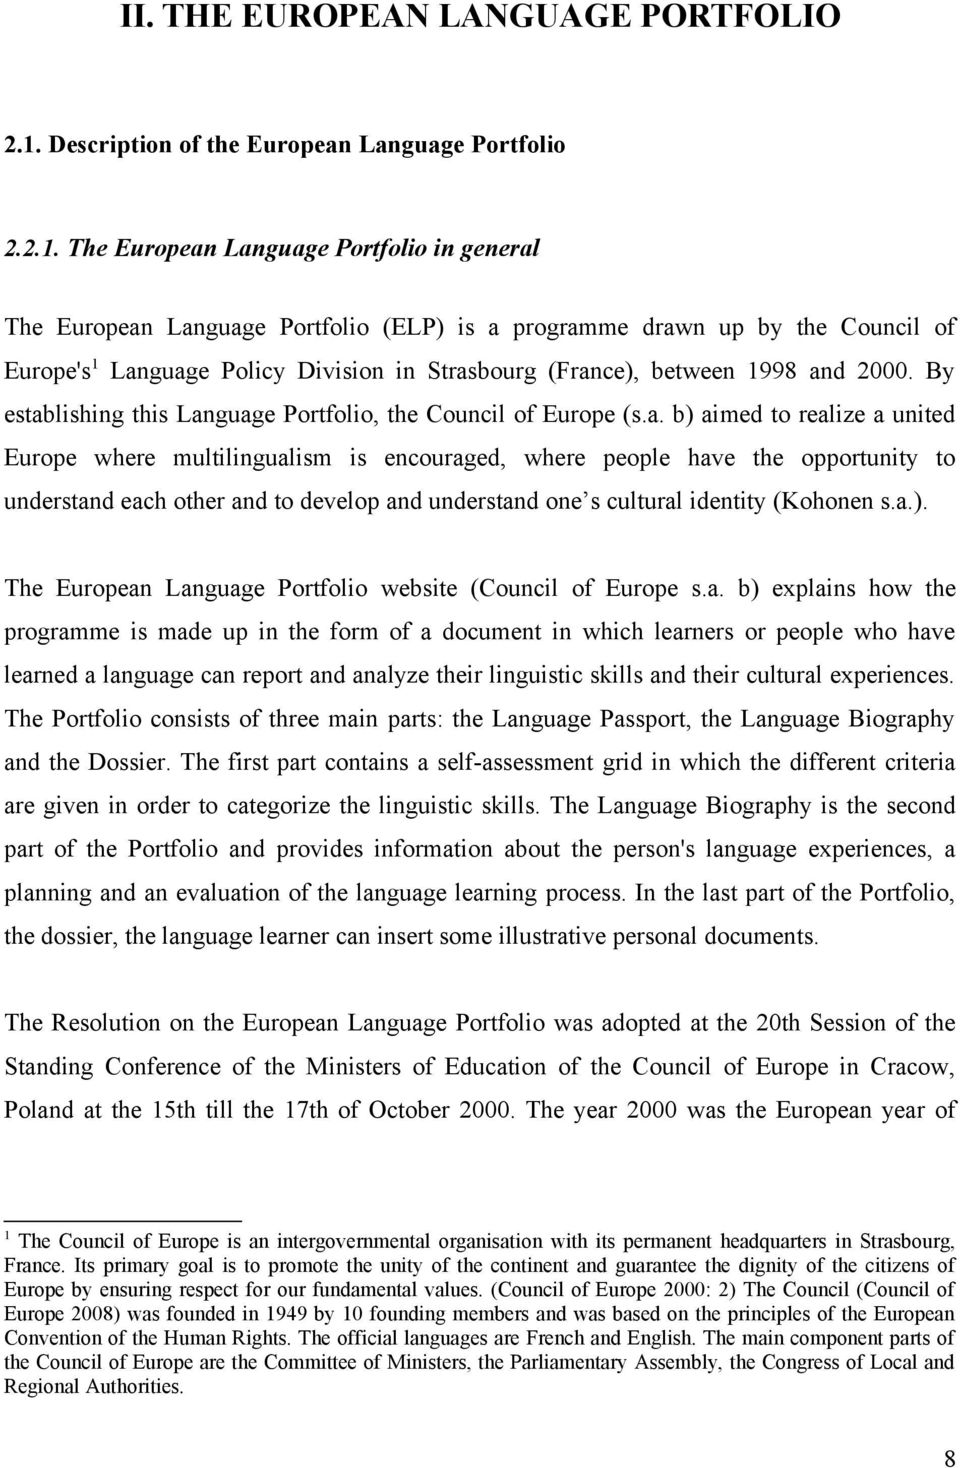 The European Language Portfolio in general The European Language Portfolio (ELP) is a programme drawn up by the Council of Europe's1 Language Policy Division in Strasbourg (France), between 1998 and